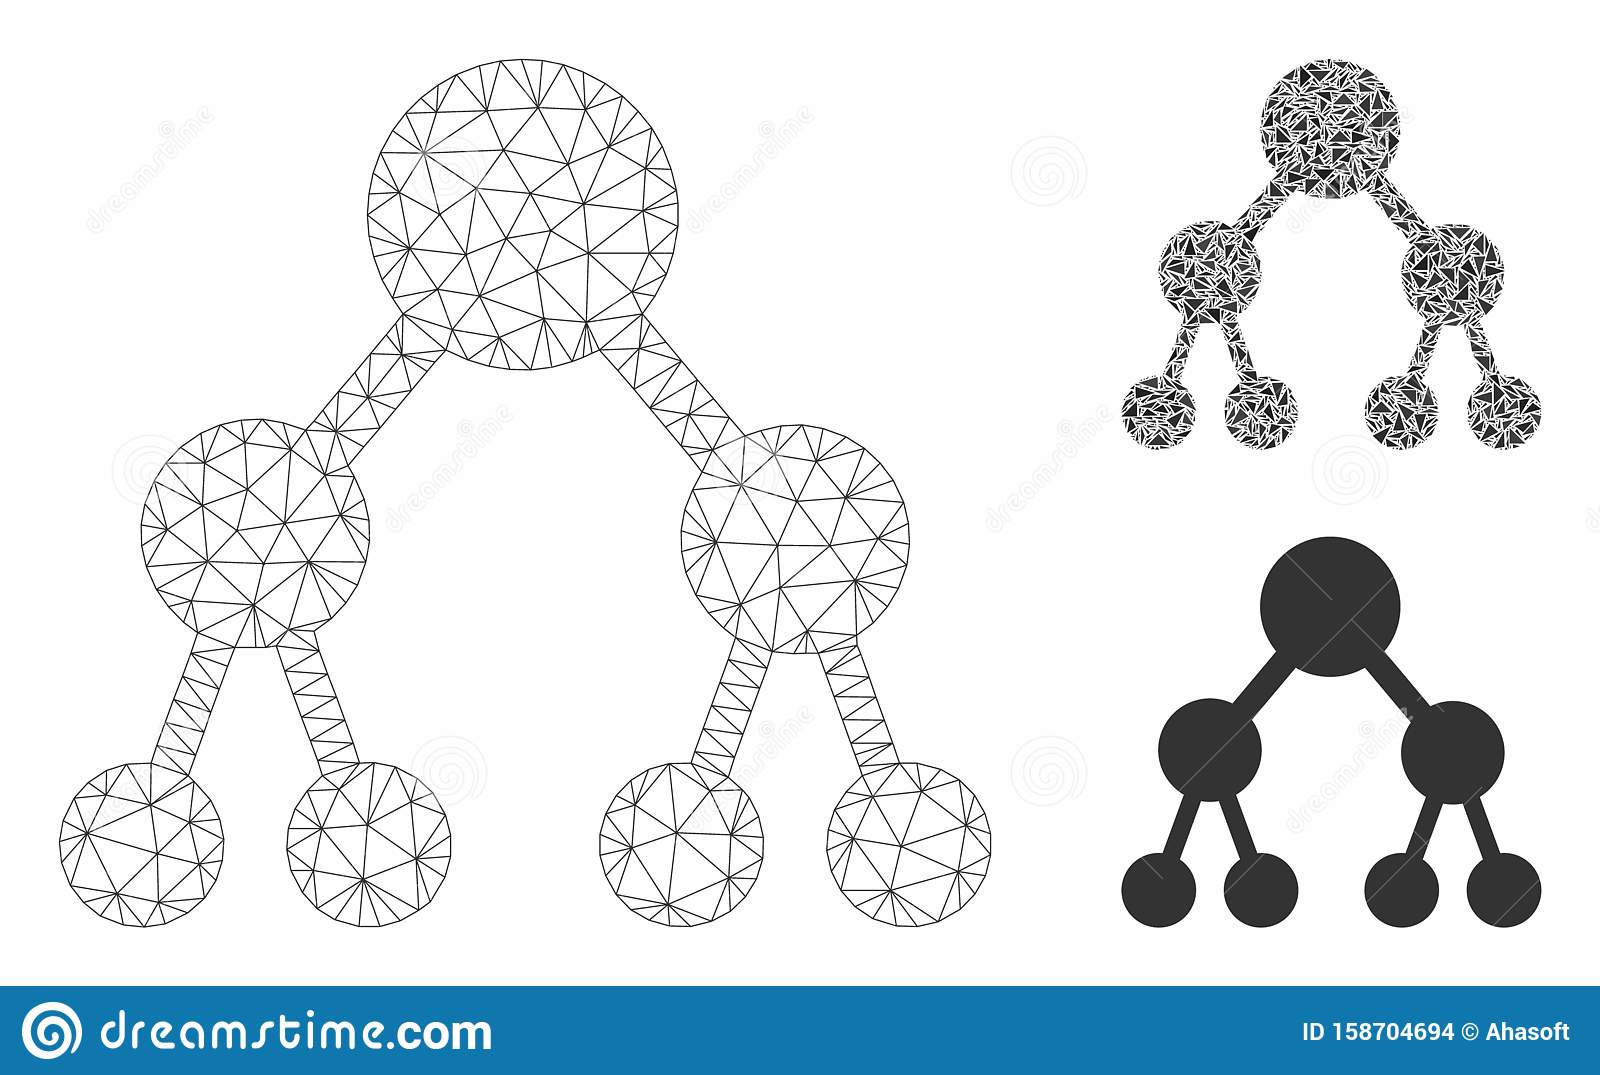 Binary Tree Vector Mesh Wire Frame Model and Triangle Mosaic Icon